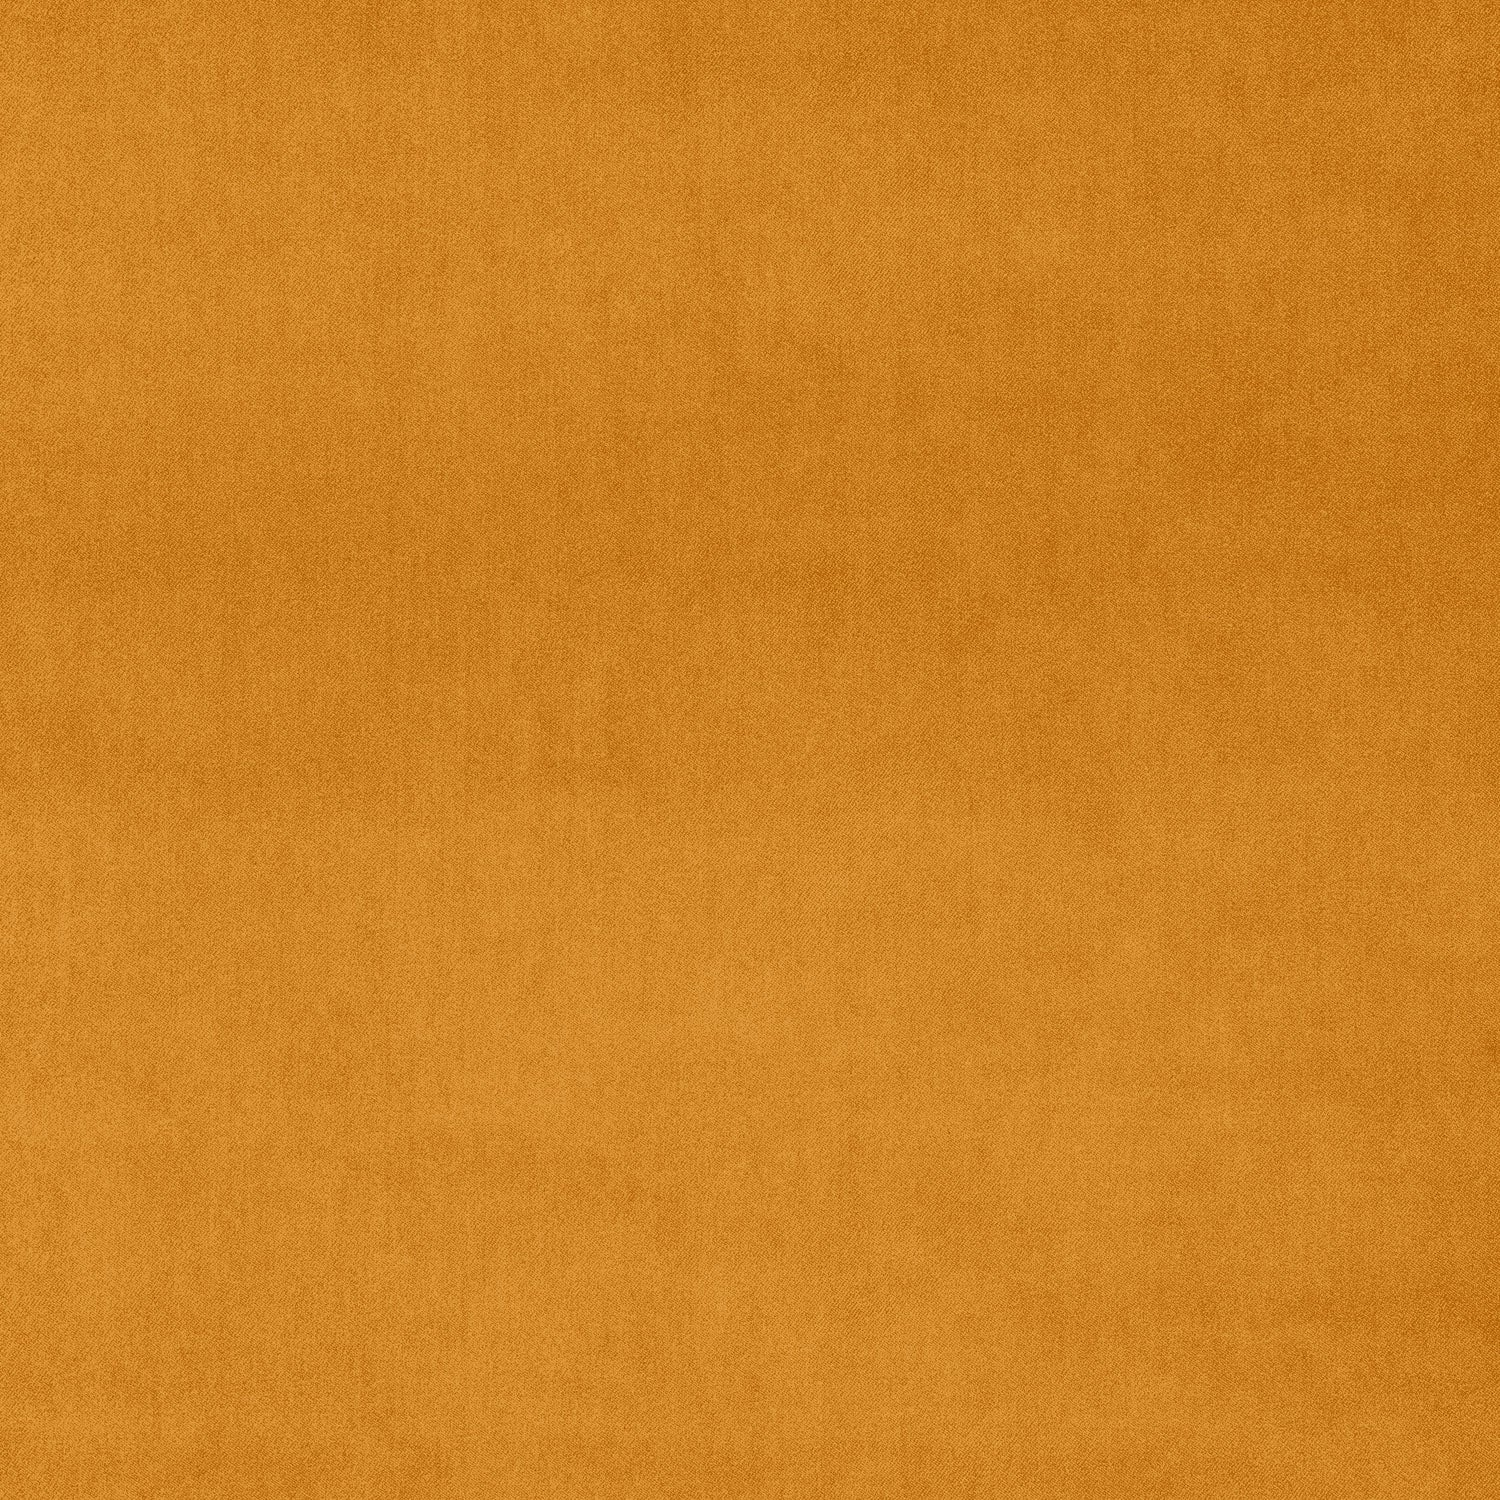 Plain orange velvet fabric for upholstery and curtains with a stain resistant finish